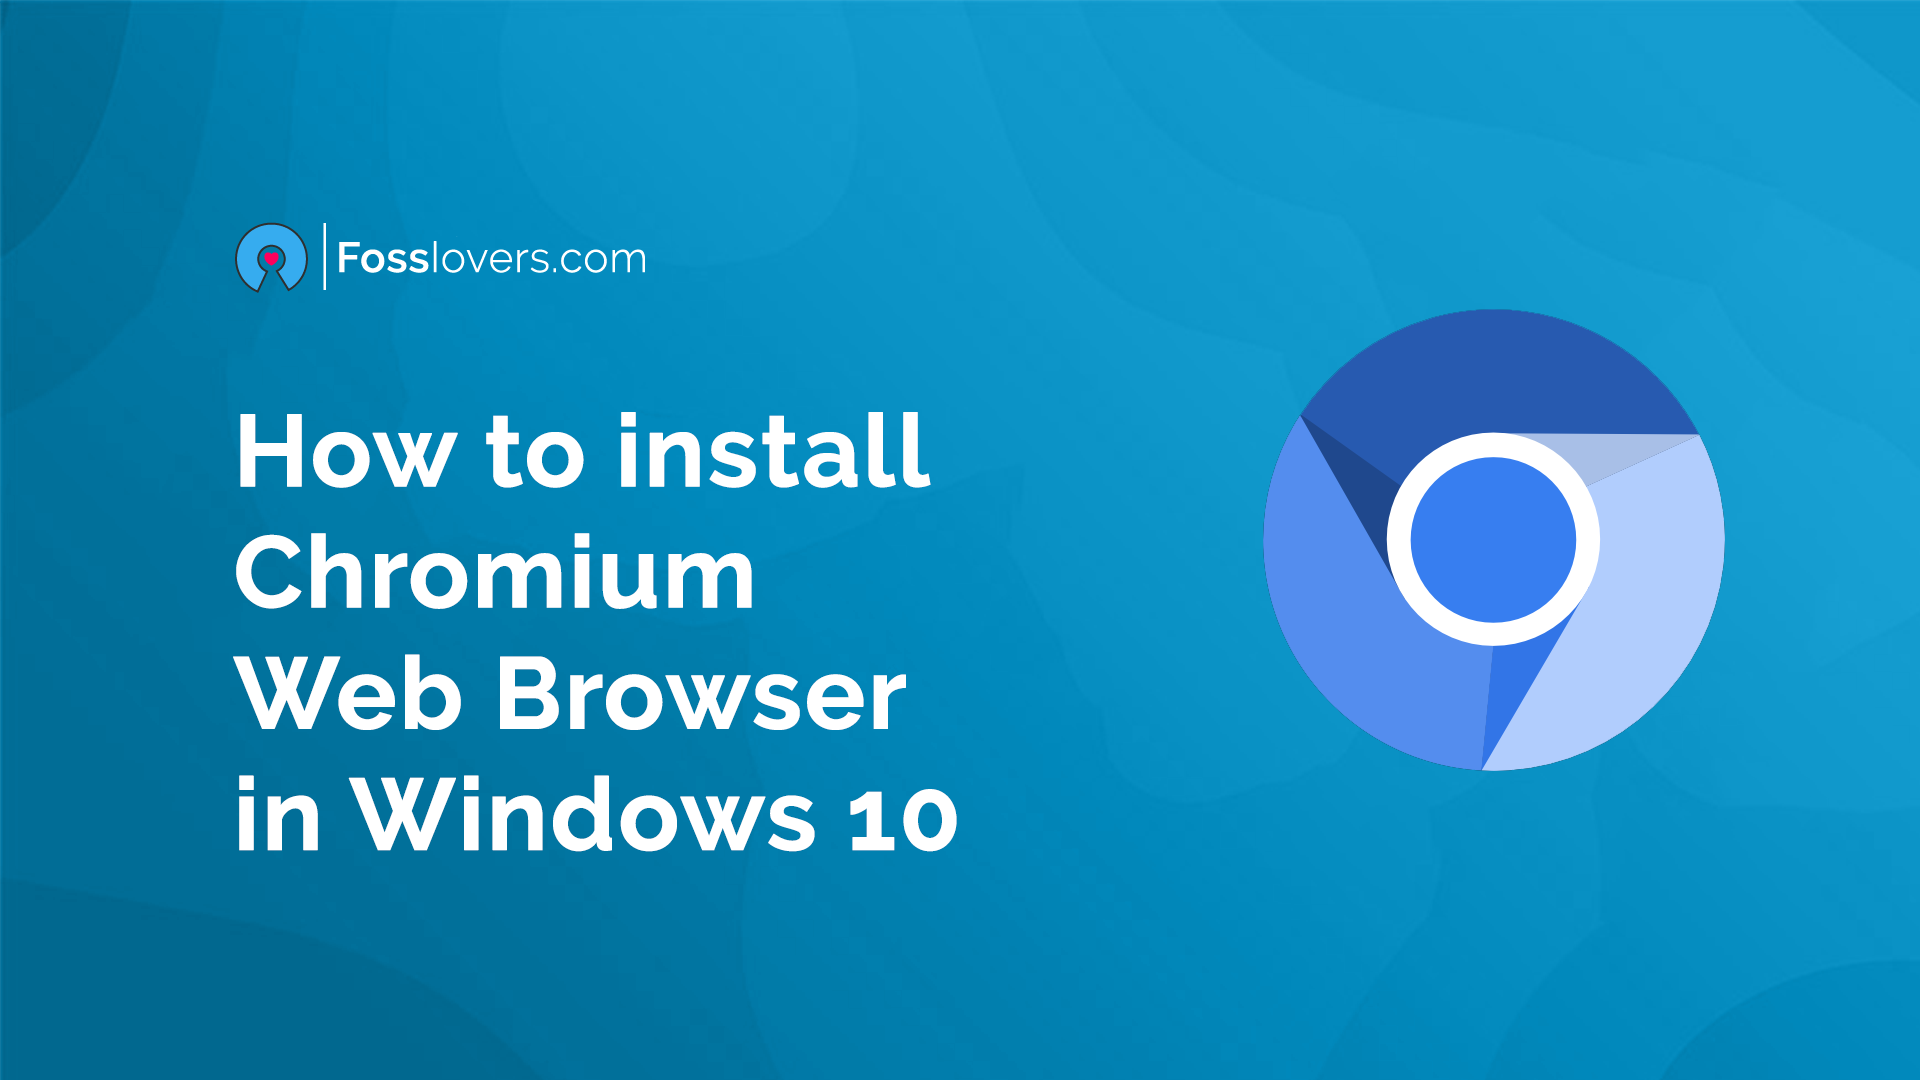 How to install Chromium Web Browser on Windows 10